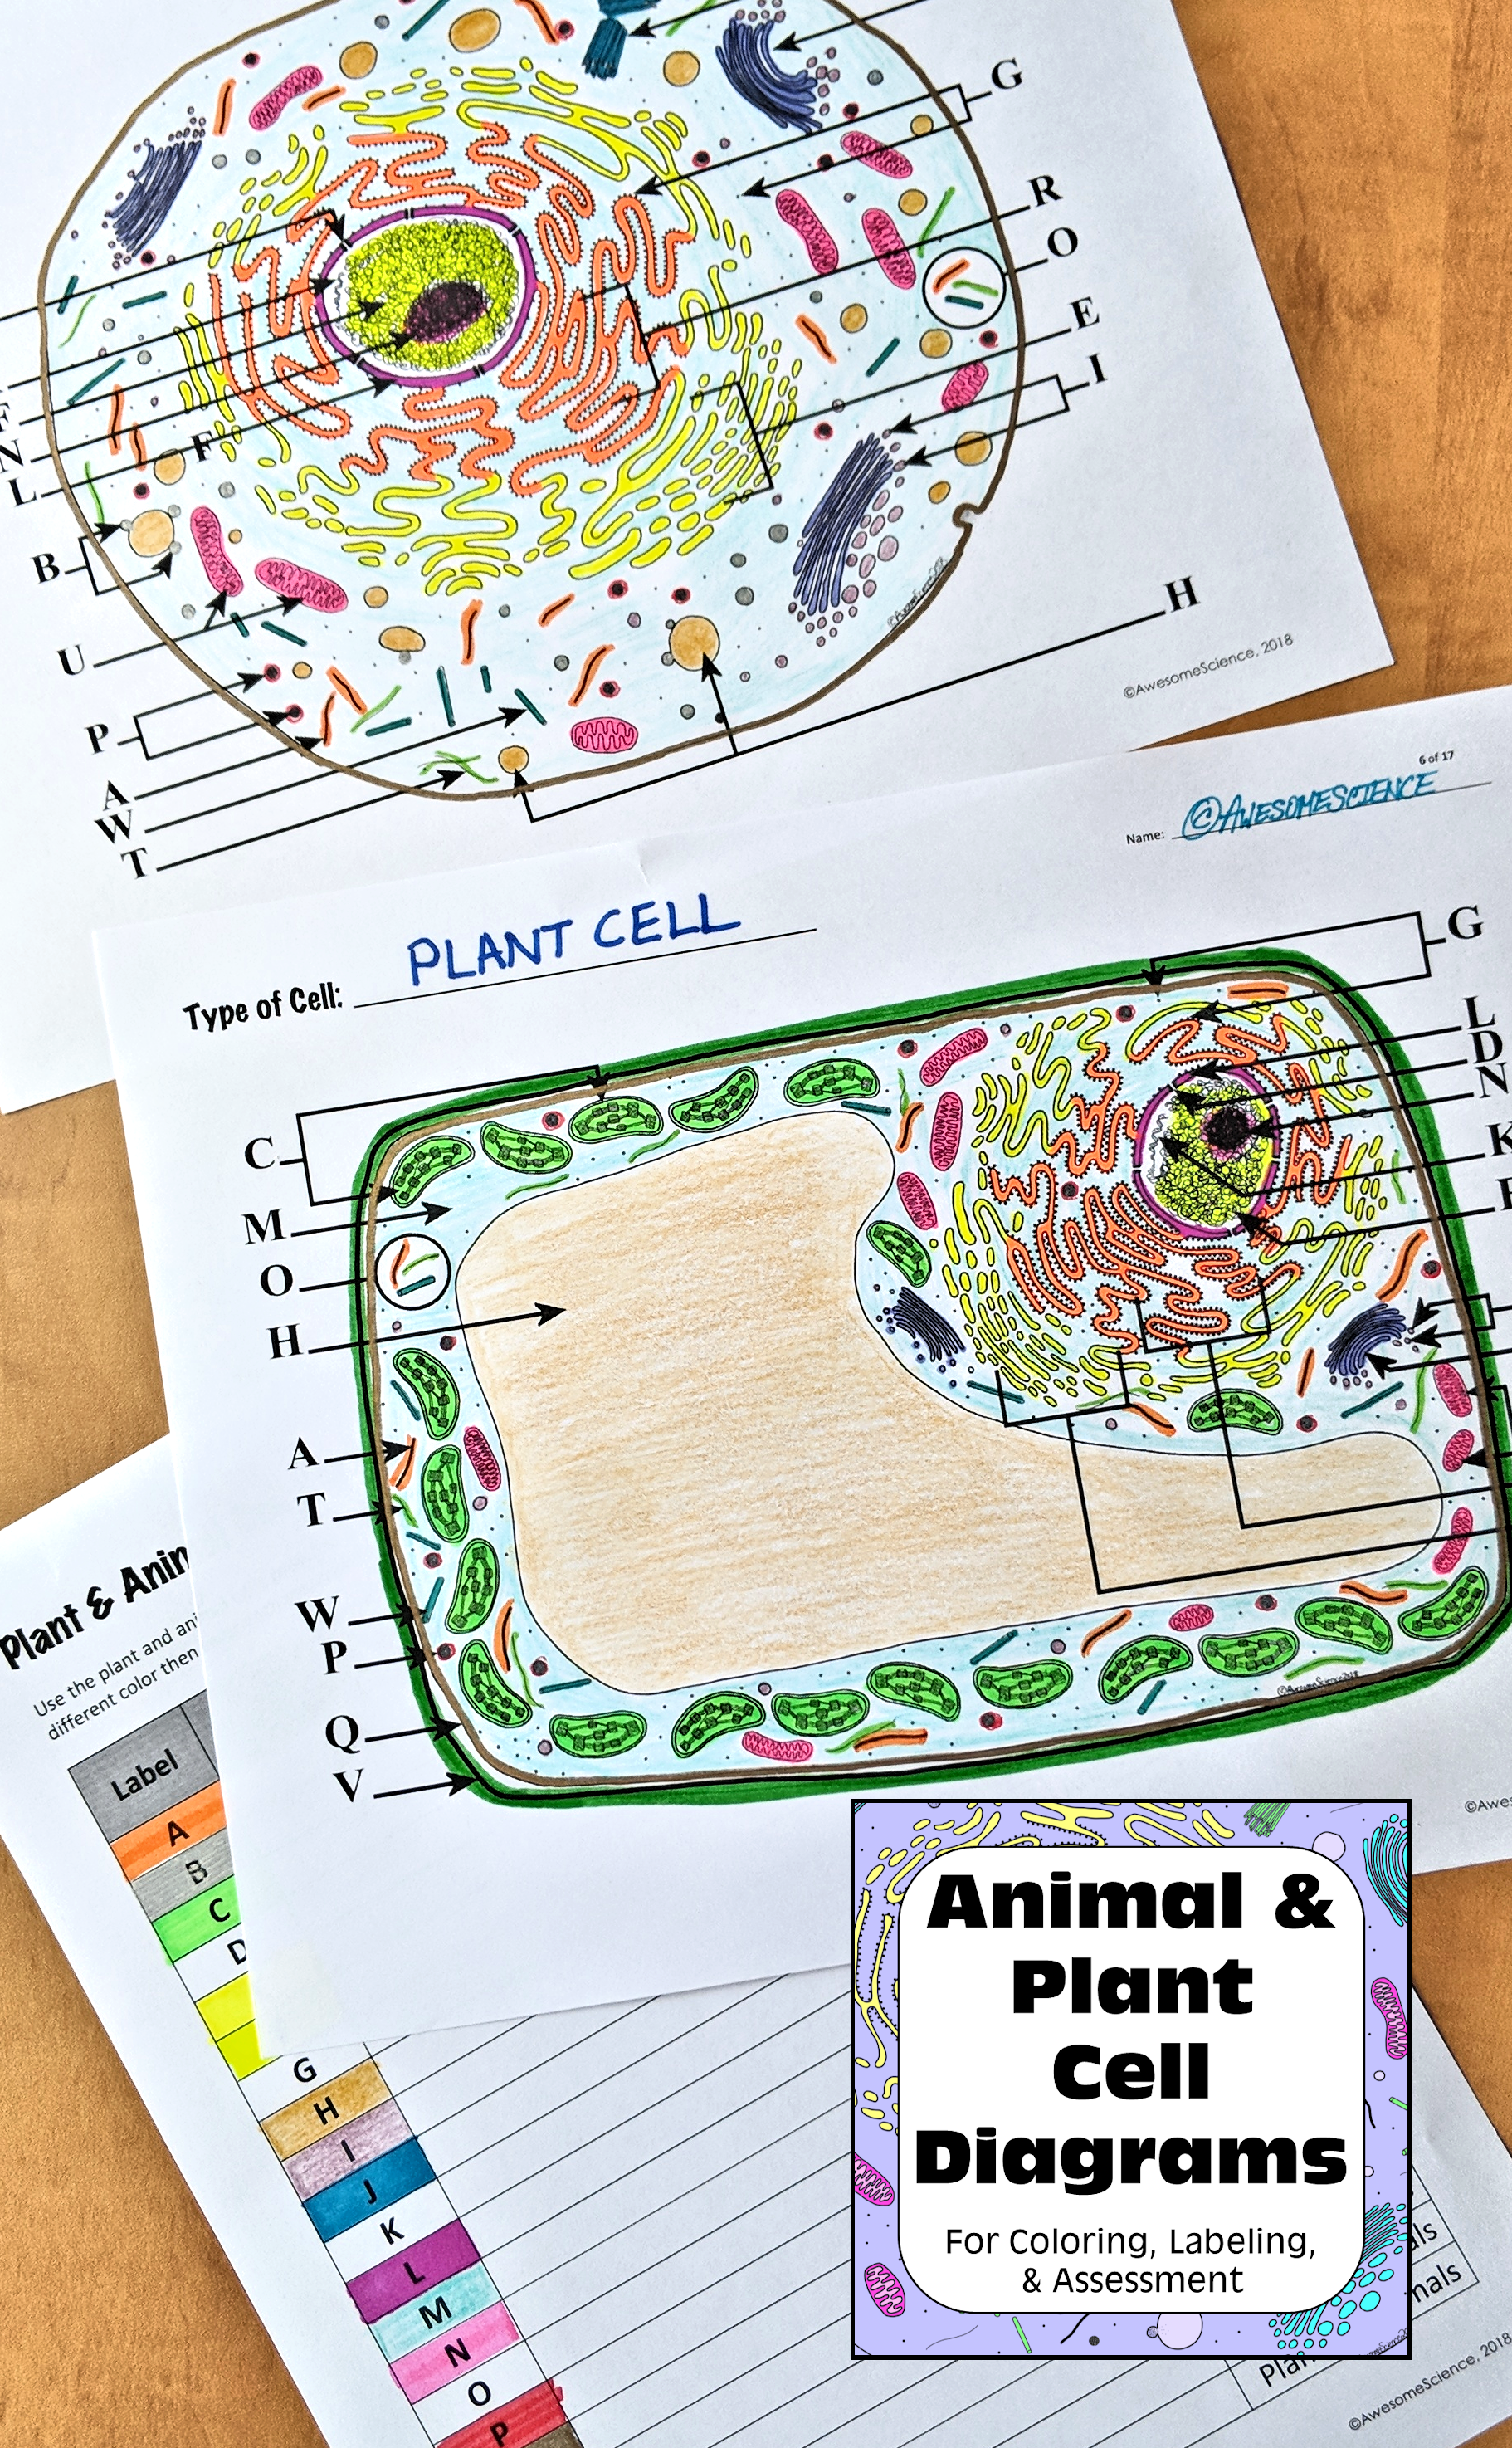 Plant And Animal Cells Animal Cell Amp Plant Cell Diagrams